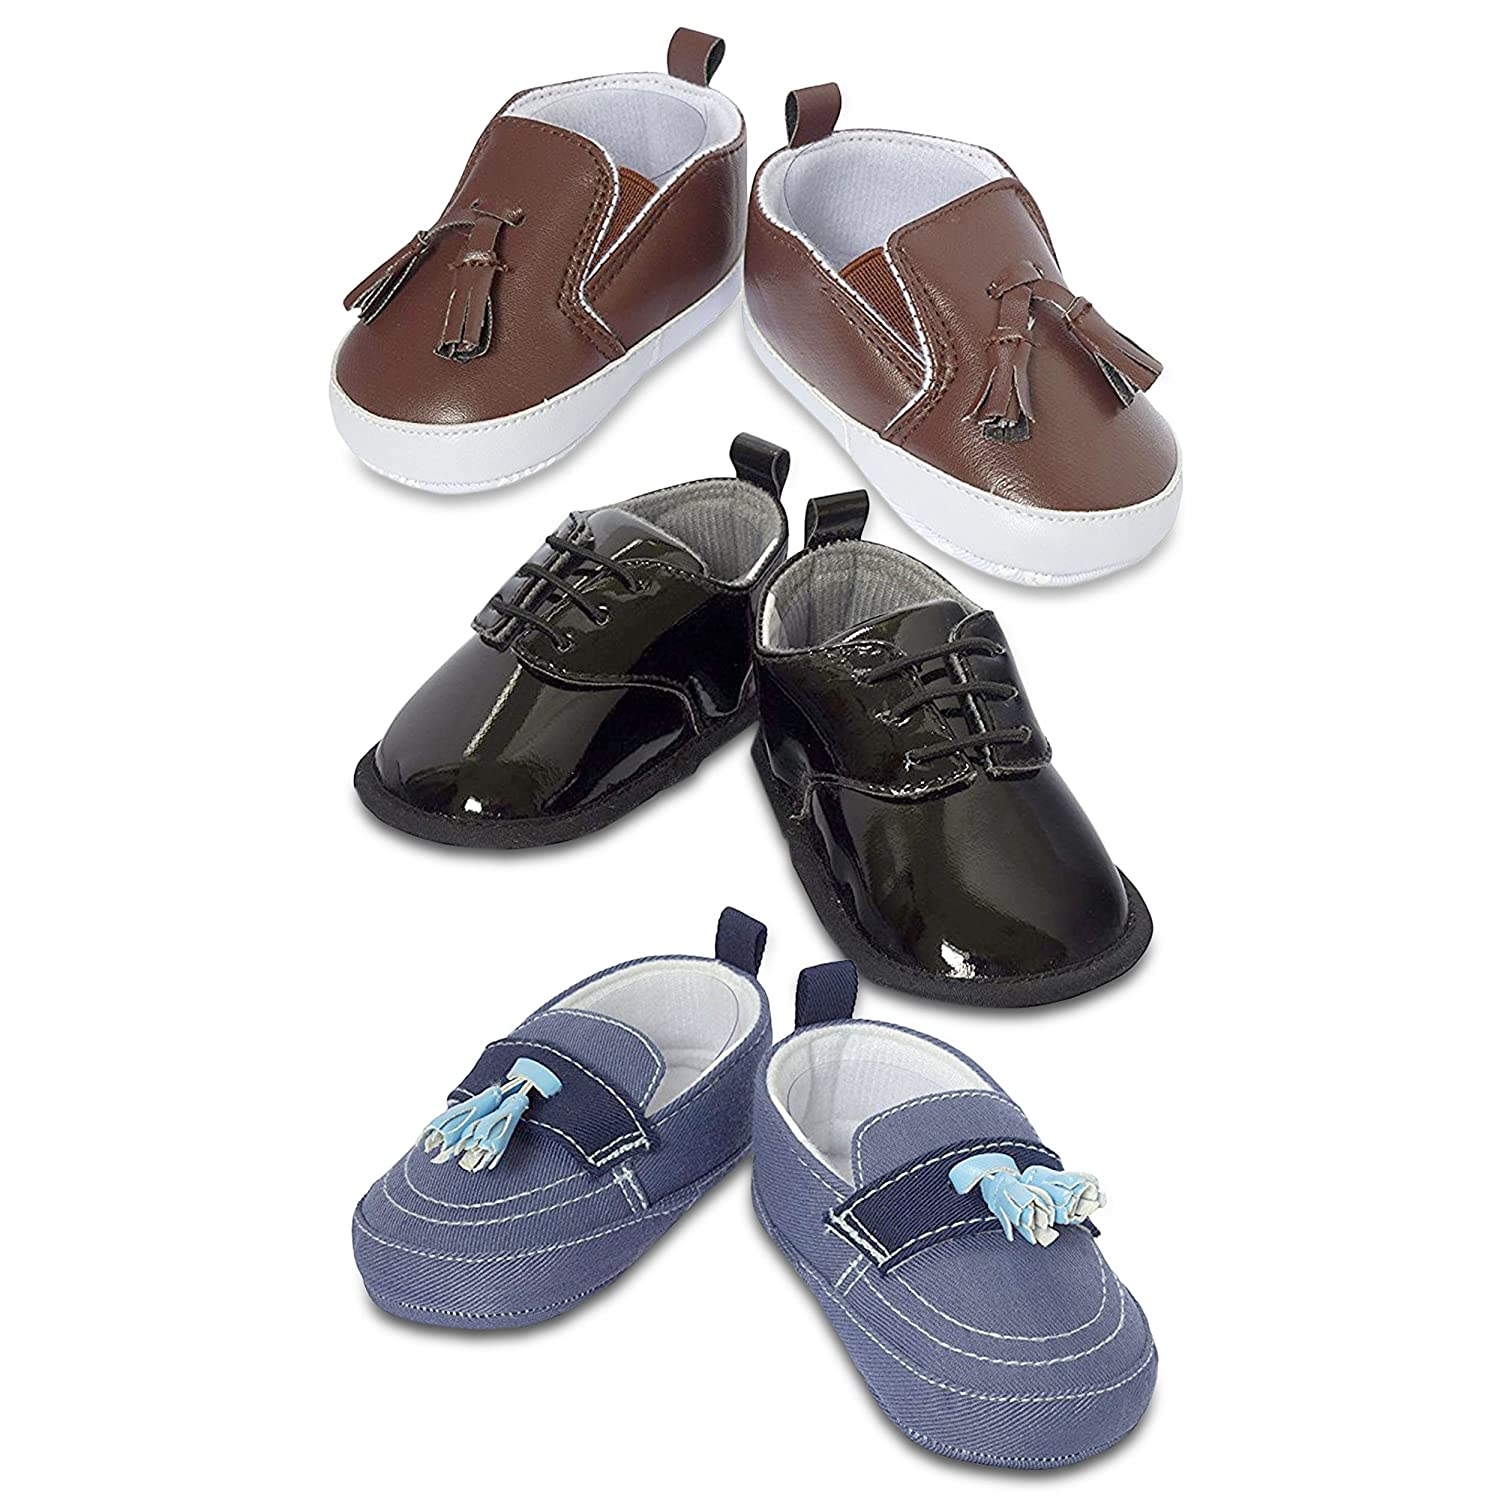 3 Pack Baby Boy Shoes- Baby Boy Dress Shoes- Soft Sole Crib Shoes- Baby Gift- for Newborn & Infant